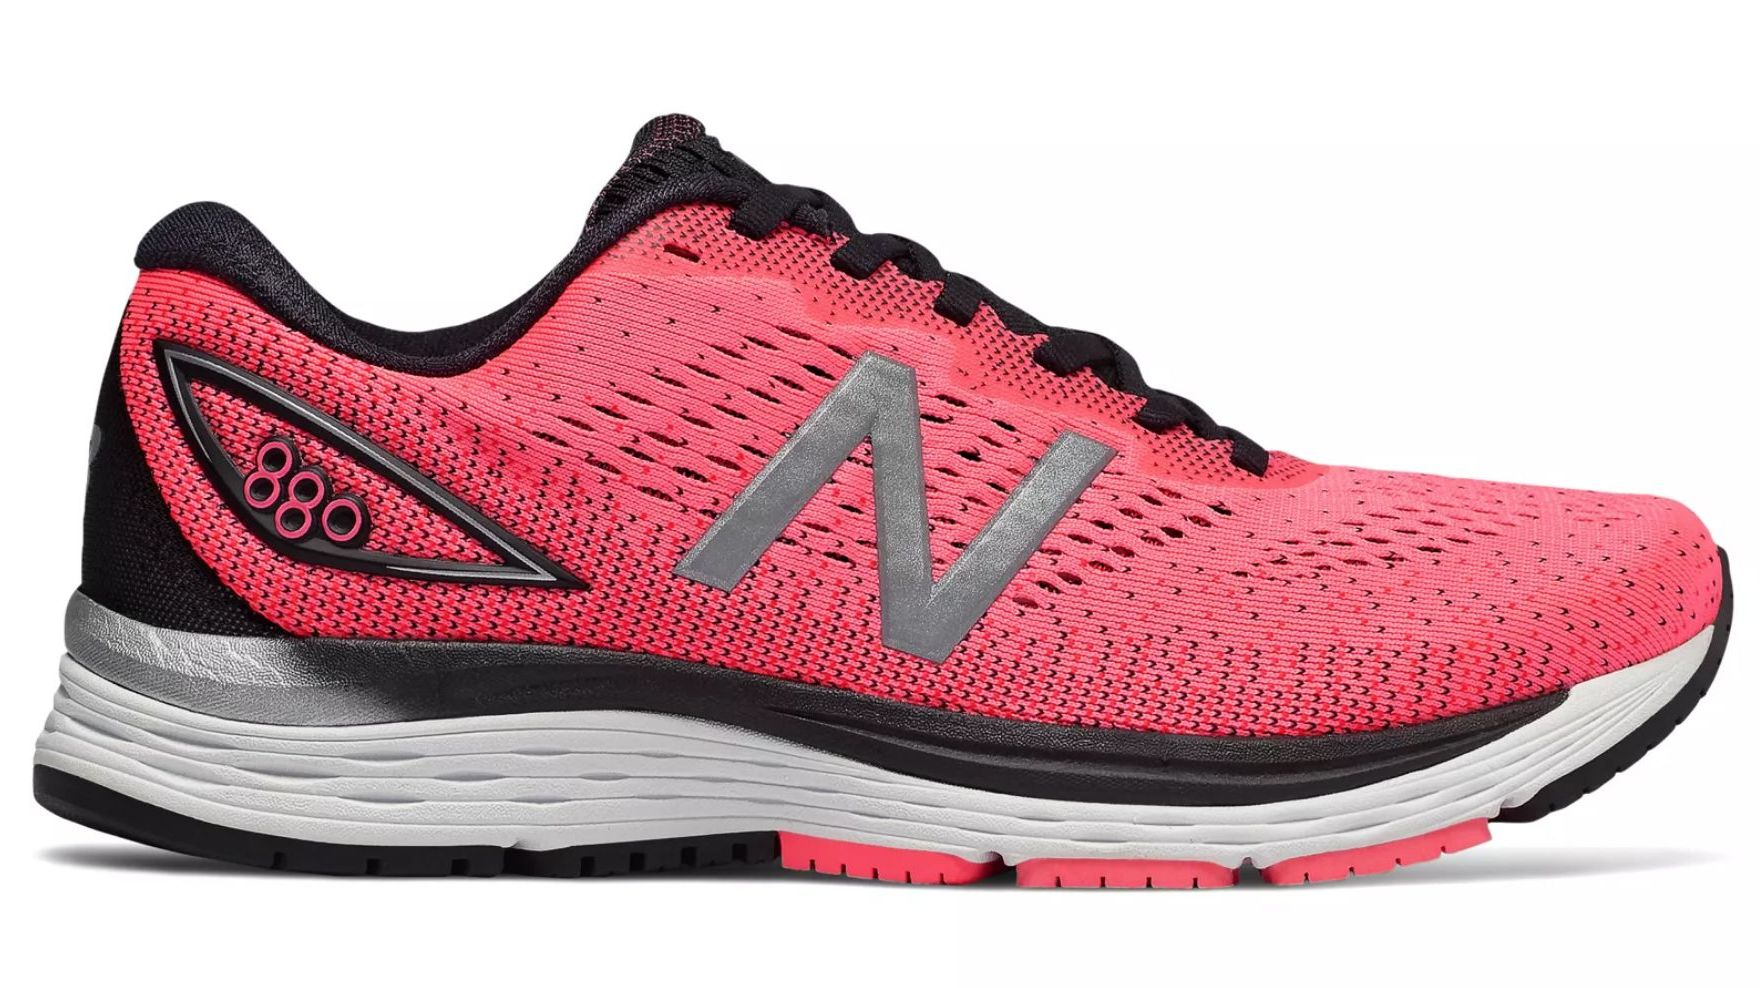 c5e8cb2fc Best New Balance Running Shoes | New Balance Shoe Reviews 2019